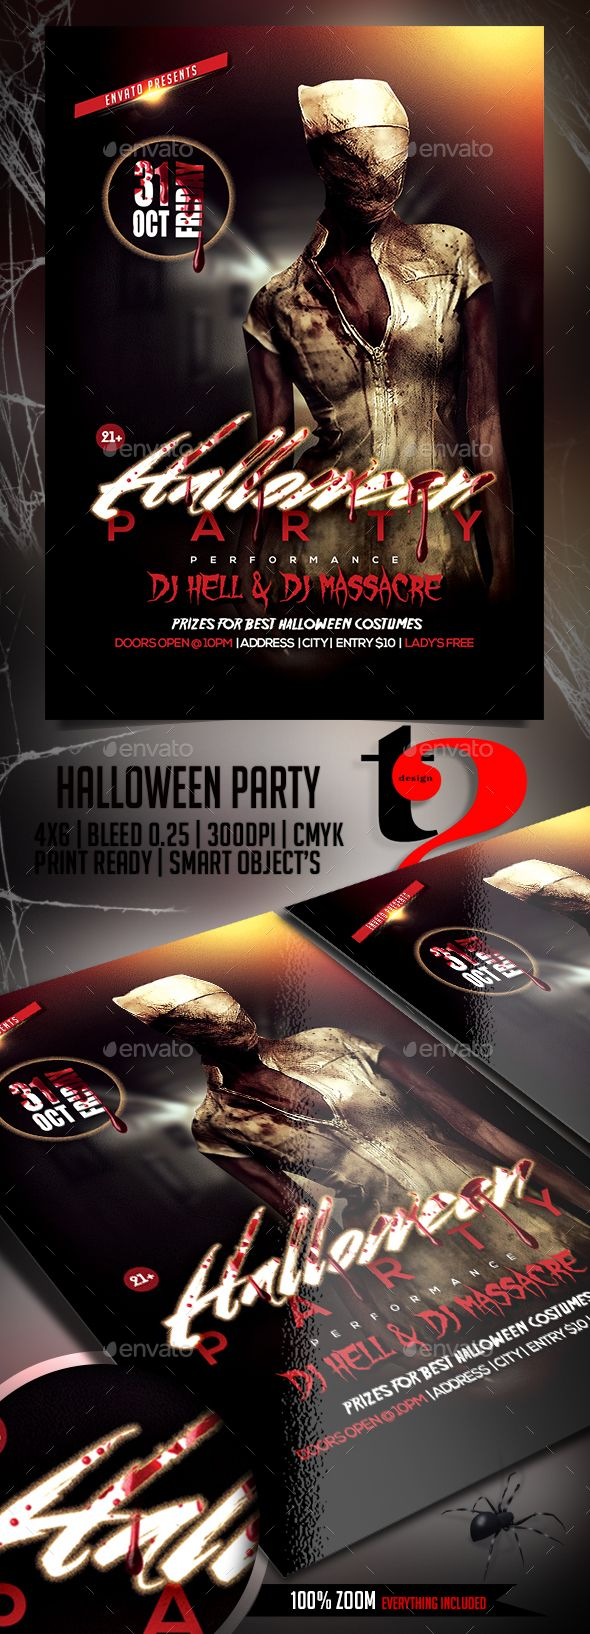 costume party and door prize flyers pike productoseb co